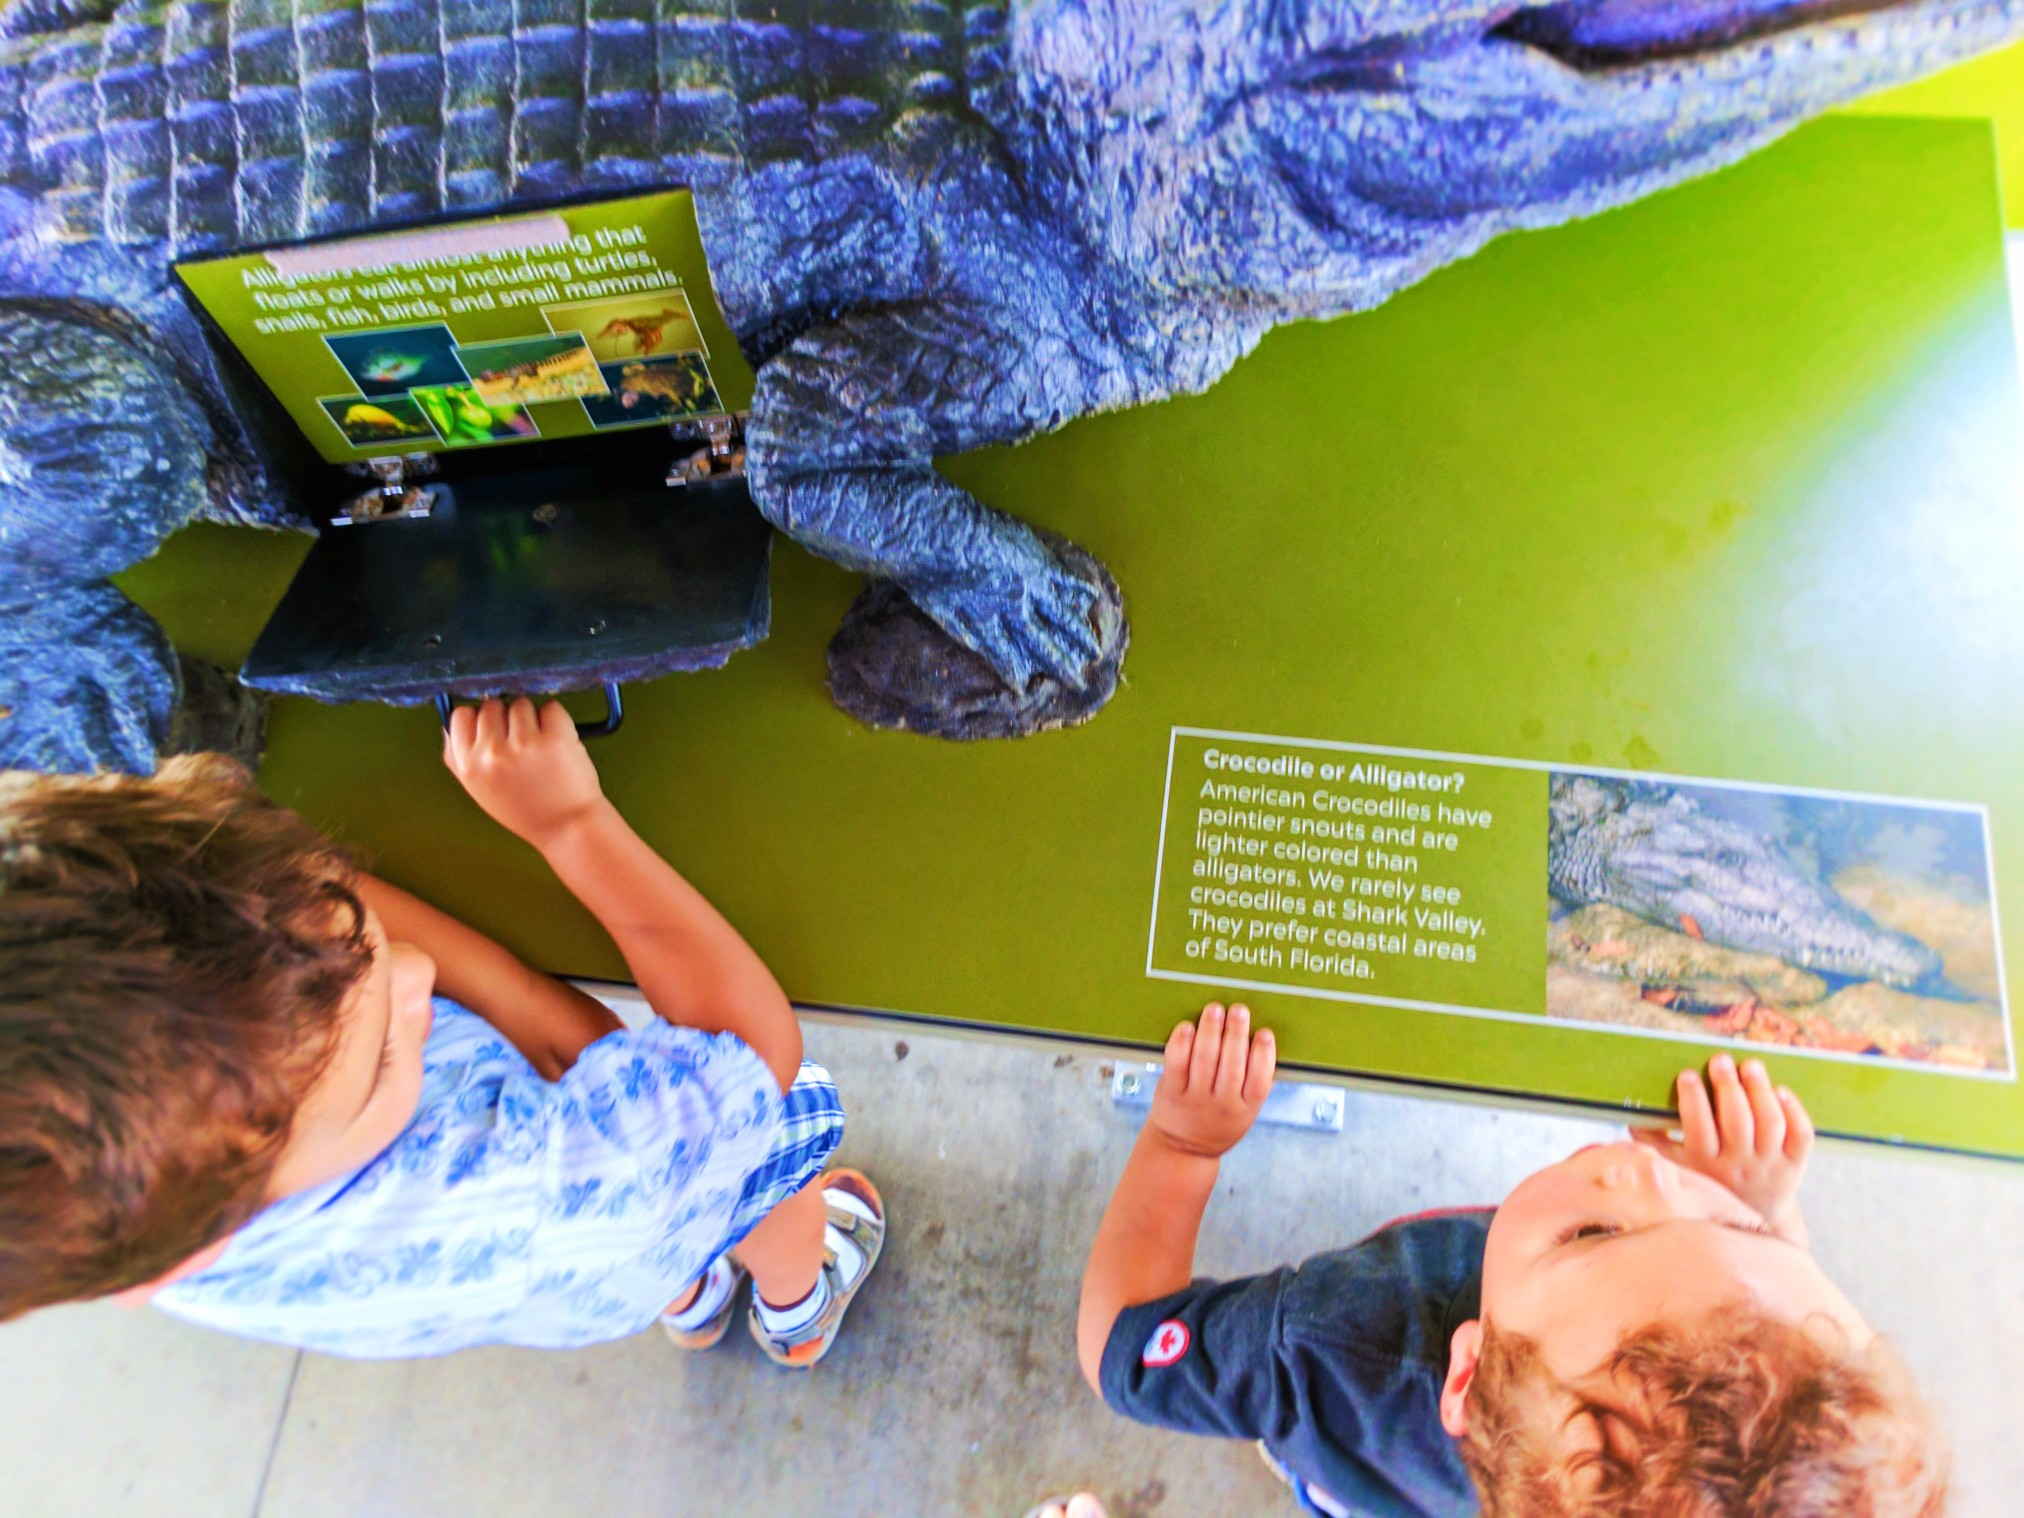 Taylor-Family-with-Alligator-exhibit-Everglades-NPS-Shark-Valley-Visitors-Center-1-1.jpg